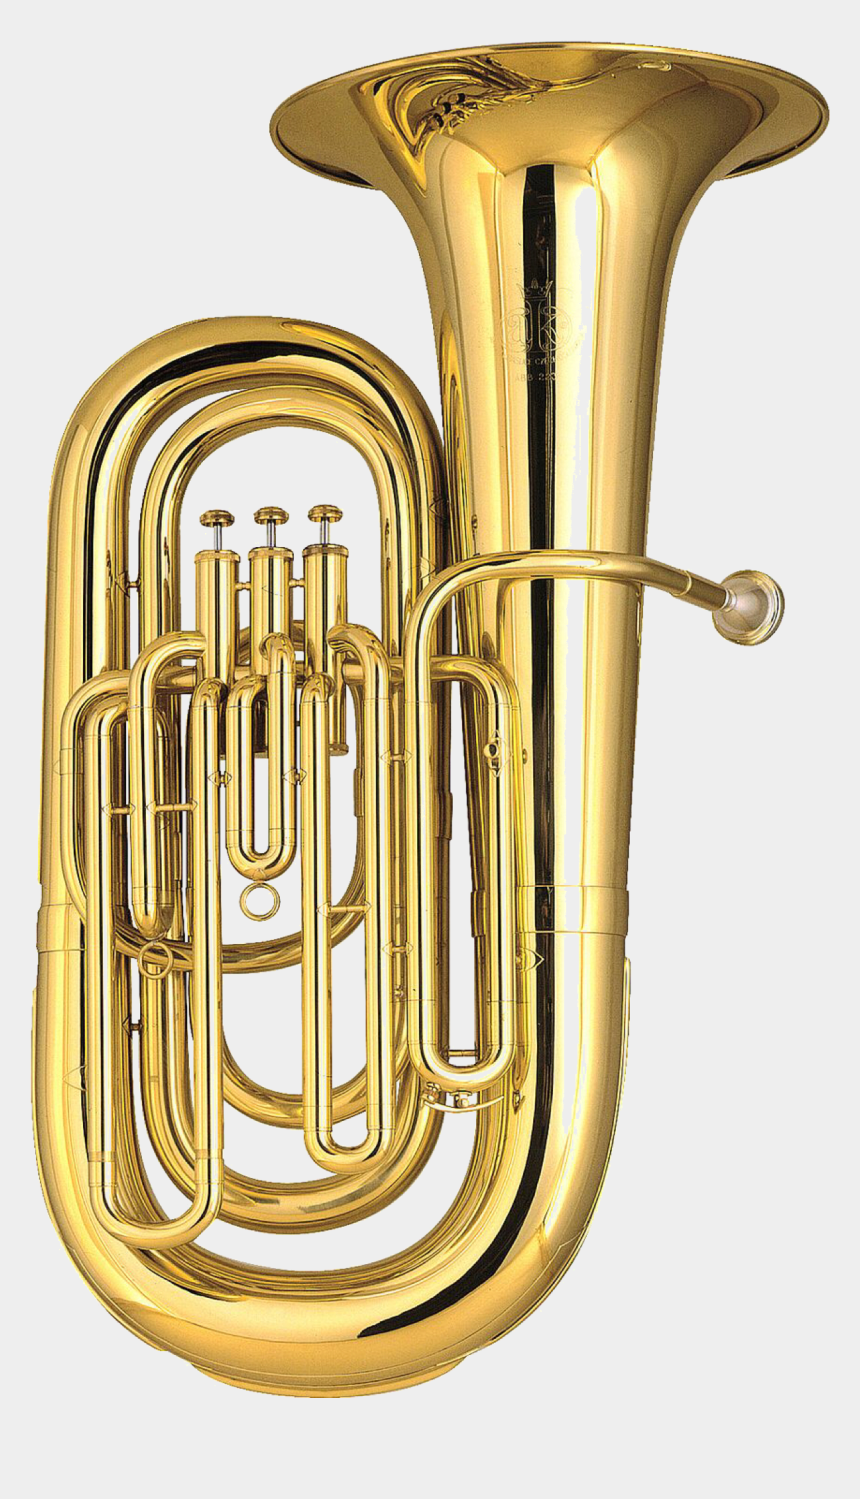 marching band instruments clipart, Cartoons - Tuba Transparent Brass Instrument - Brass Instrument Tuba